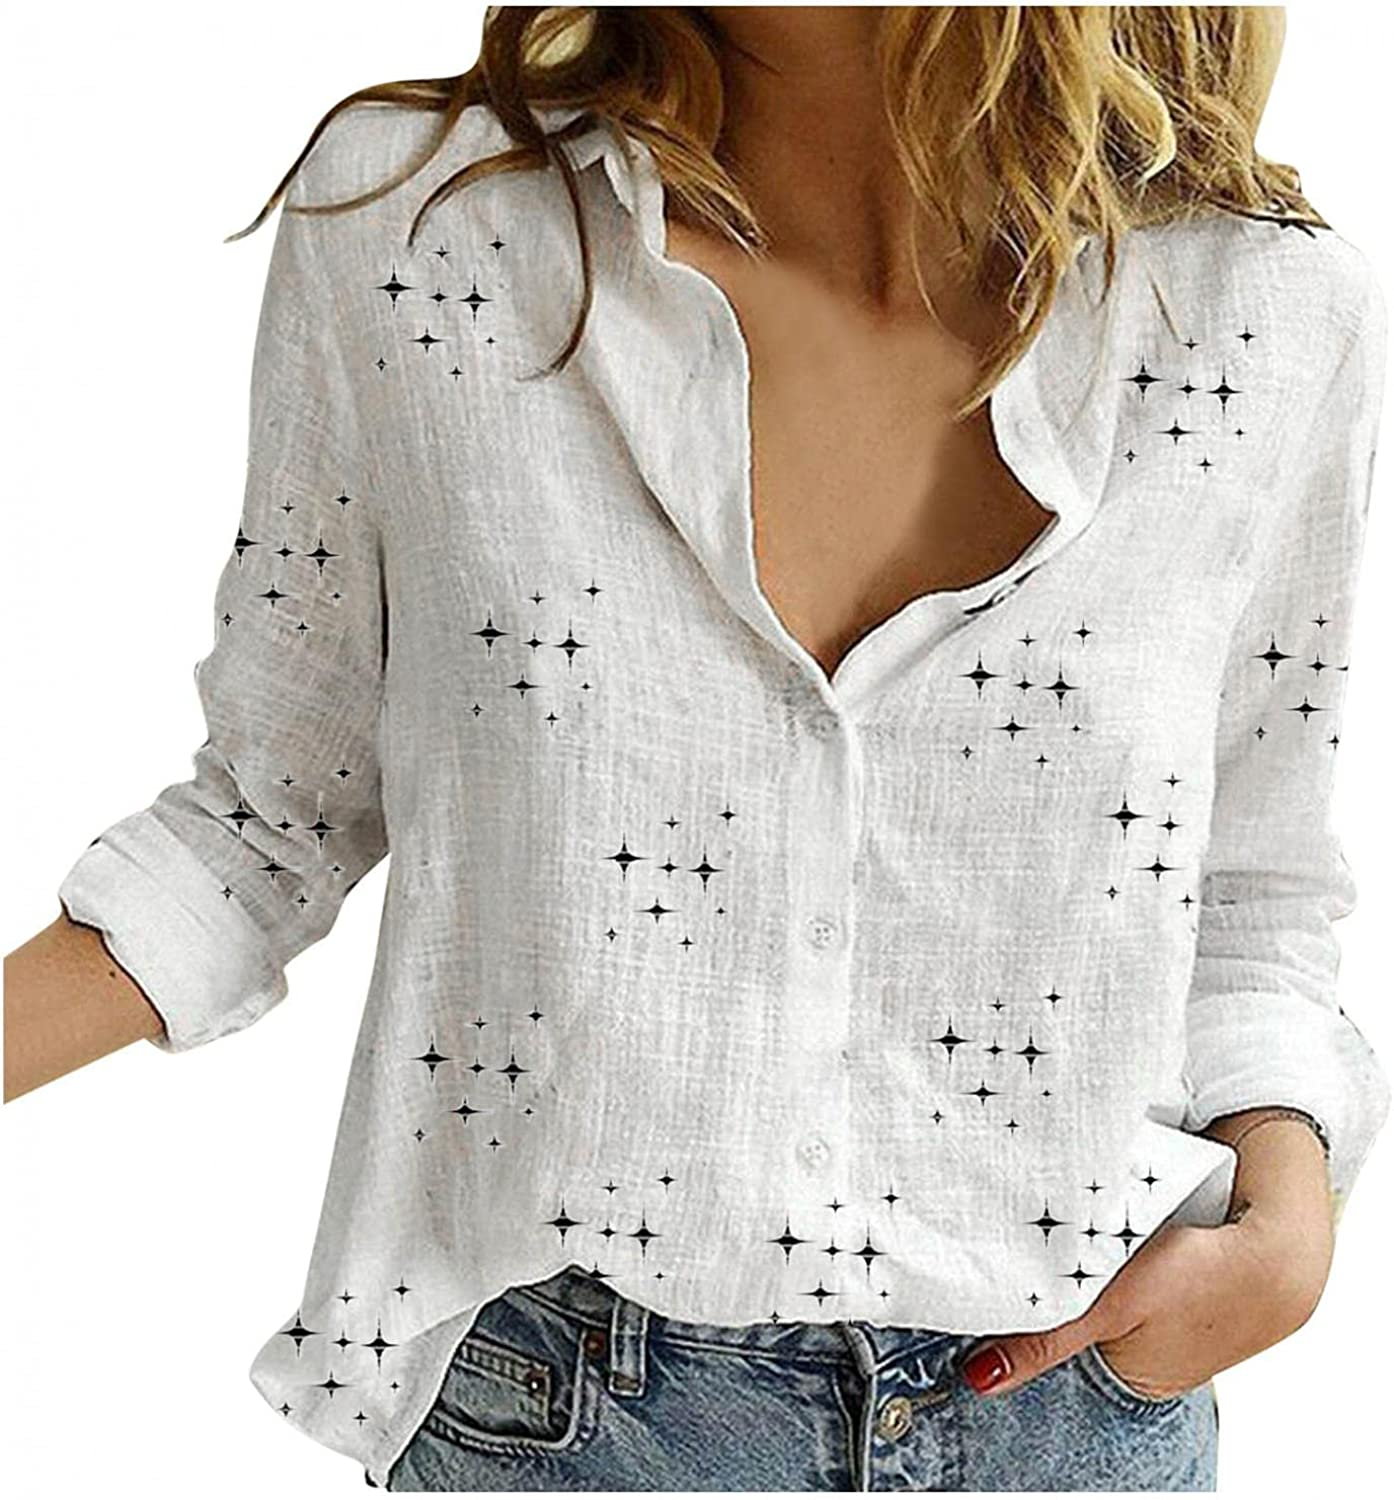 Jeepuch Long Sleeve Tee Shirts for Women, Womens Button Down Star Printed Long Sleeve Shirts Blouse Plus Size Tops